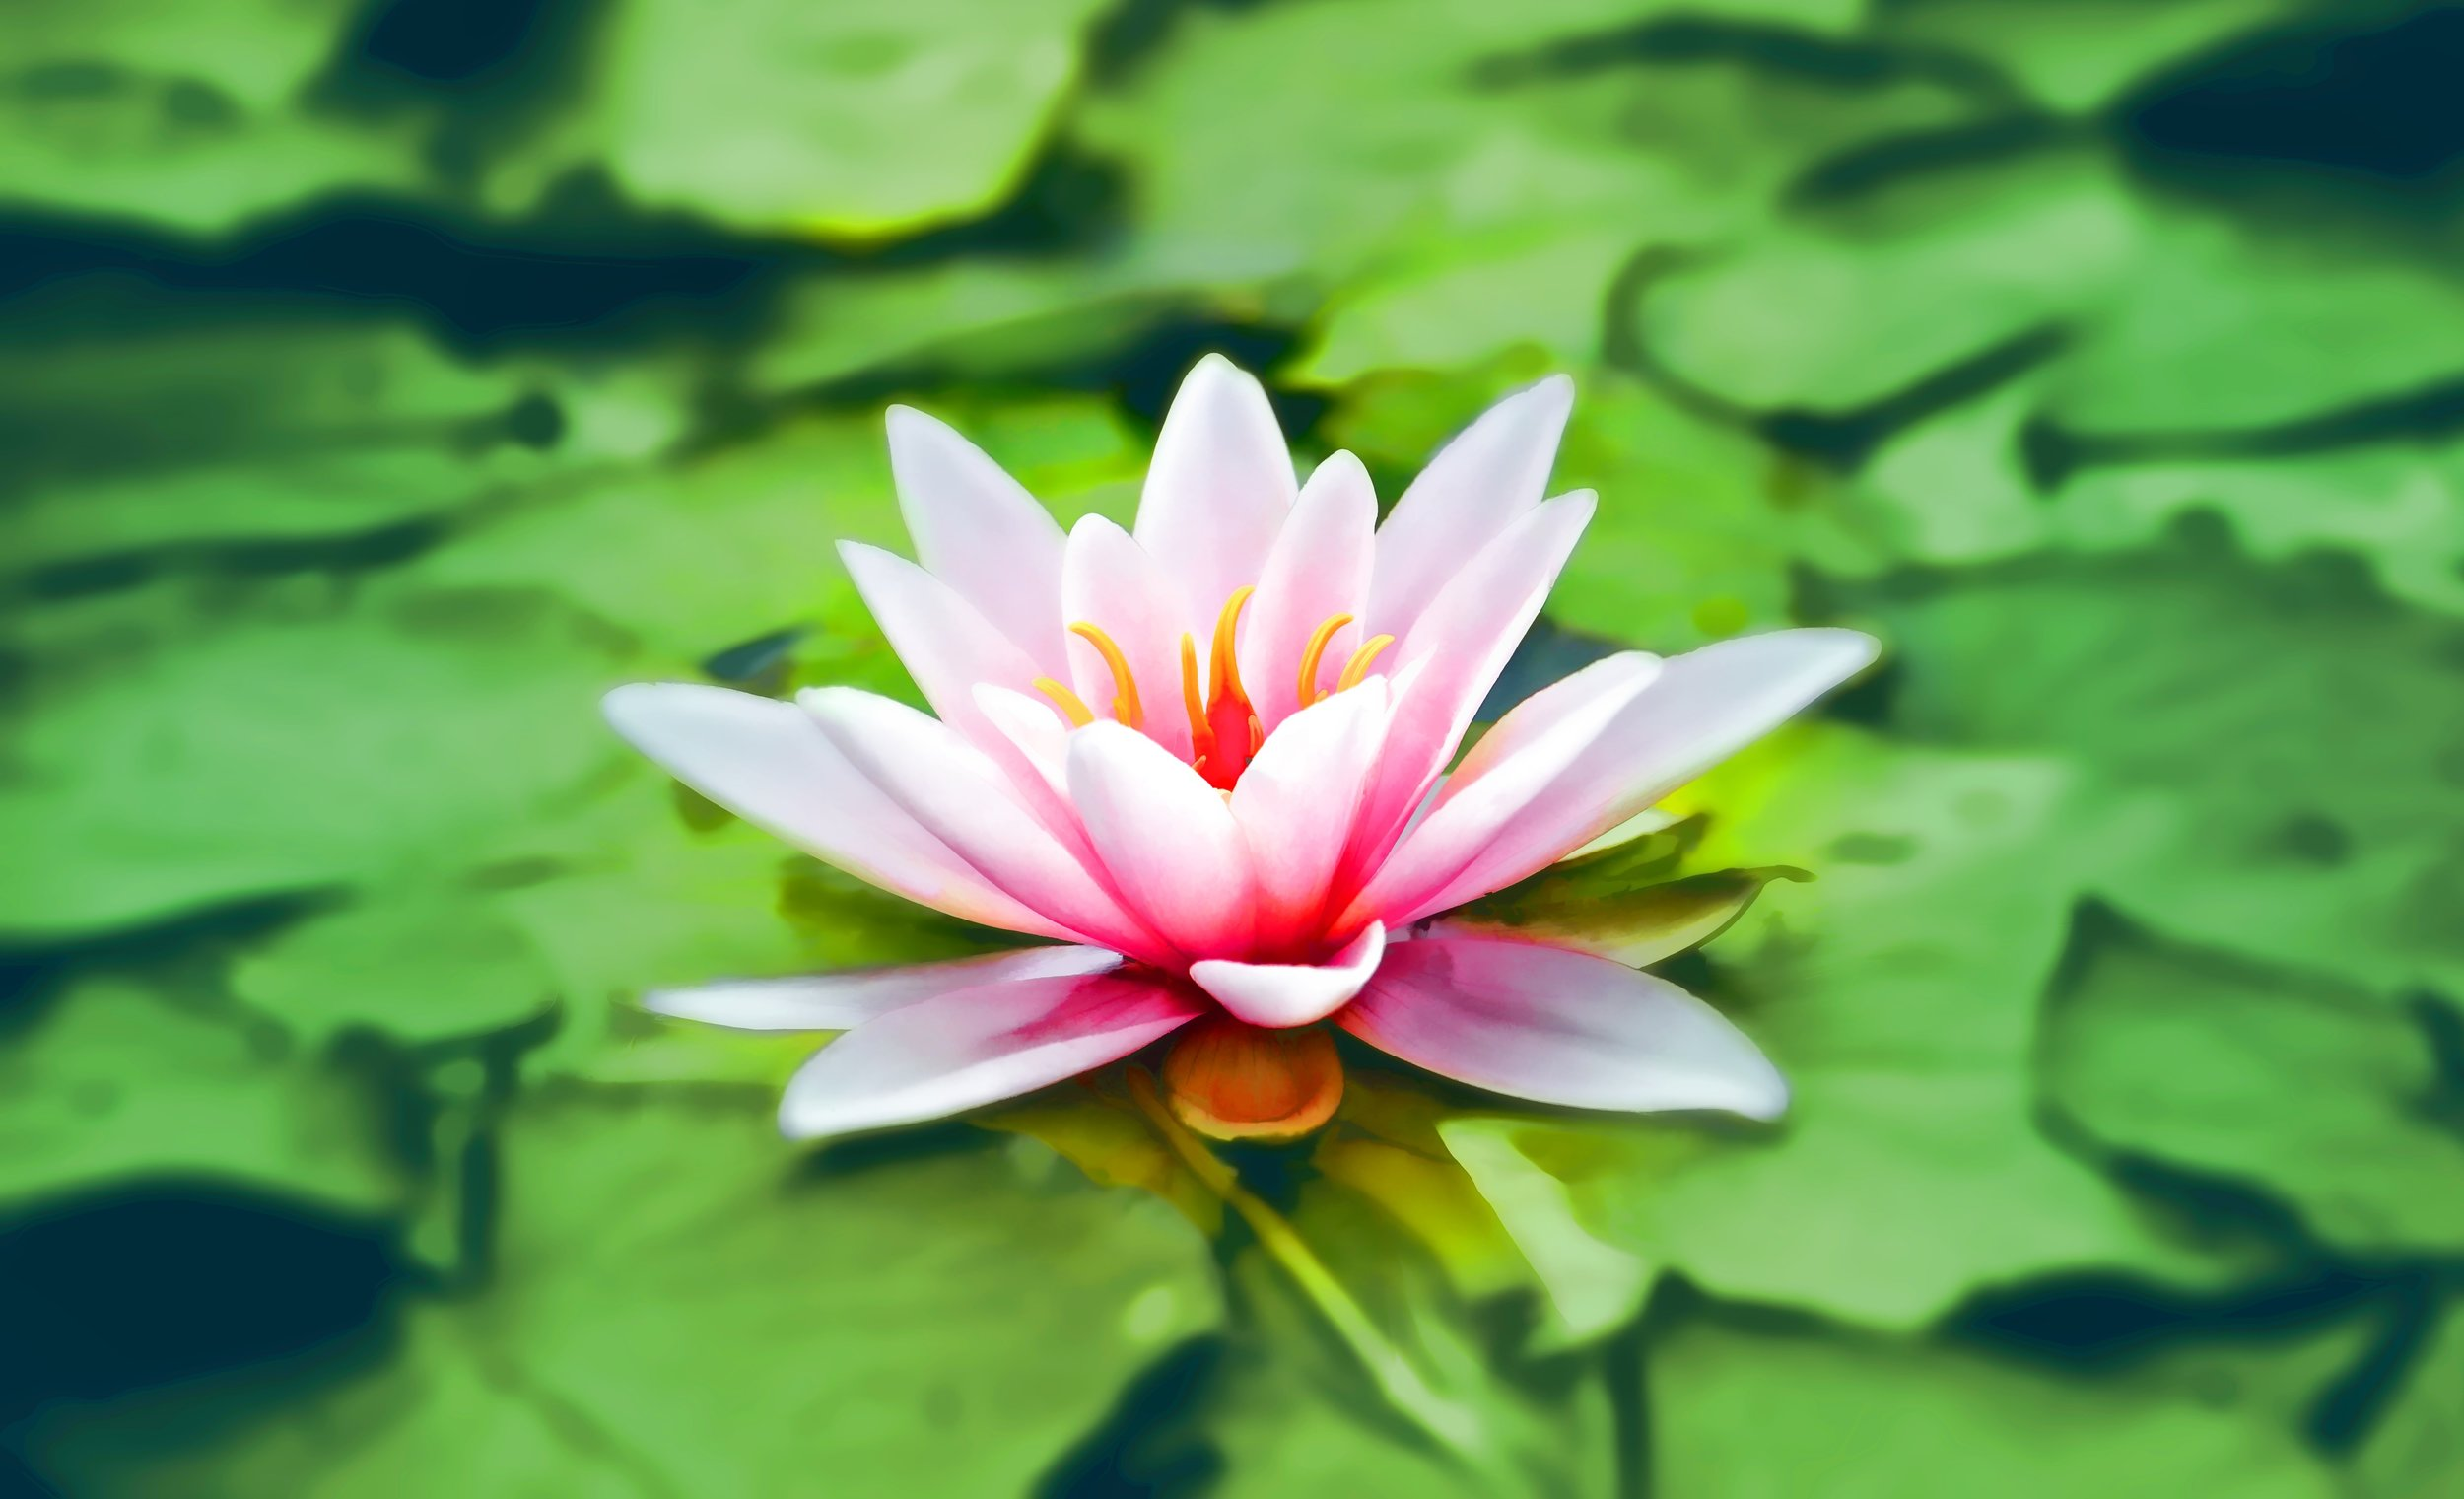 waterlily-pink-water-lily-water-plant-158465.jpeg